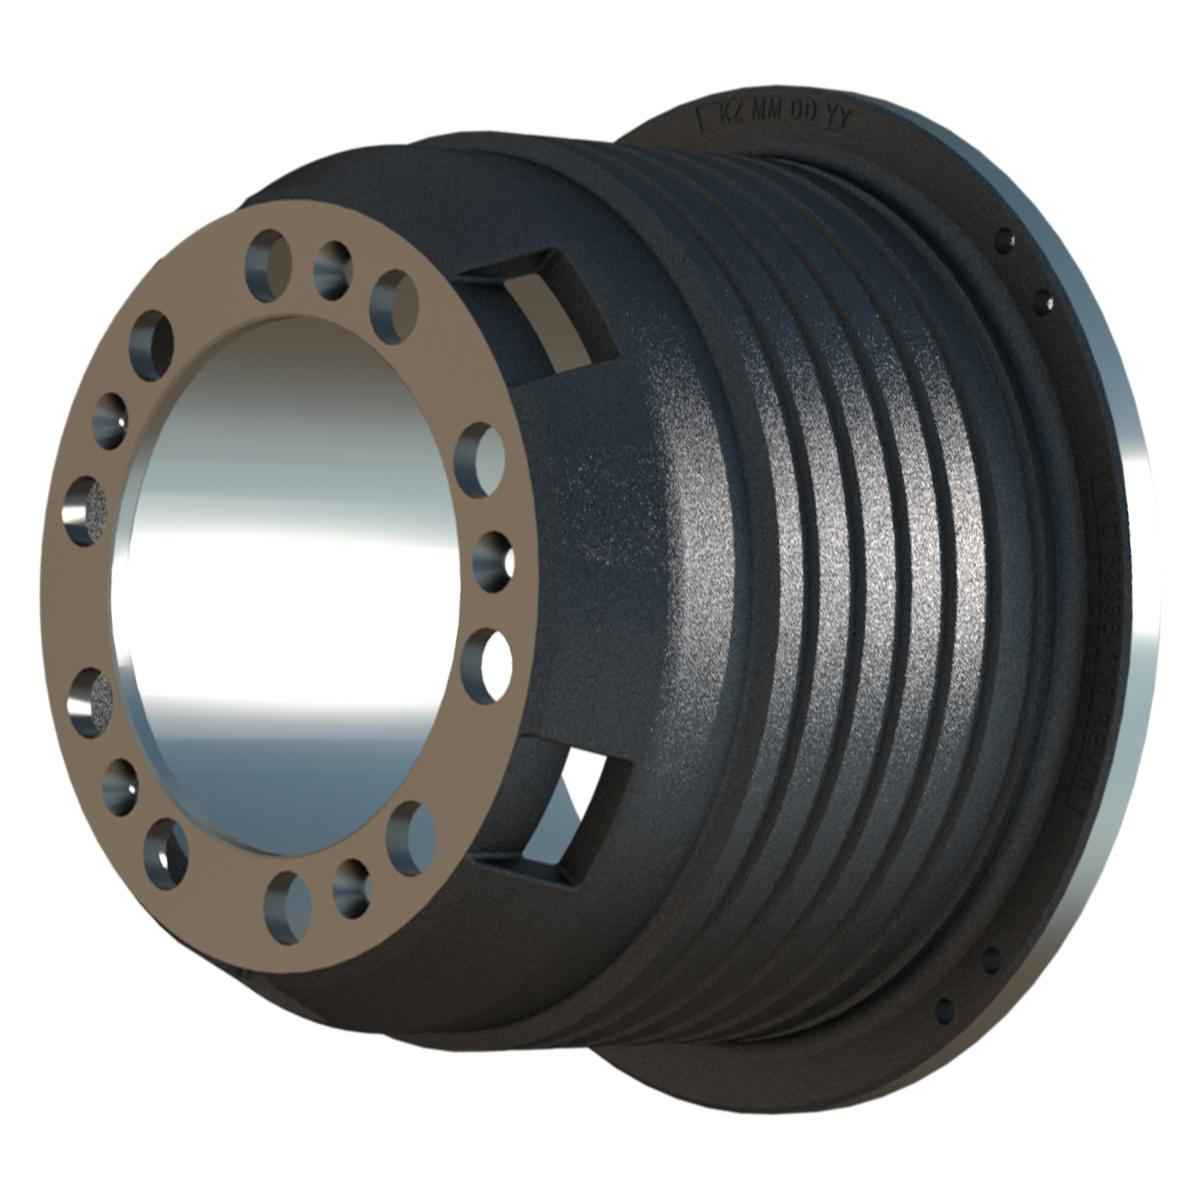 KIC Transit Brake Drums